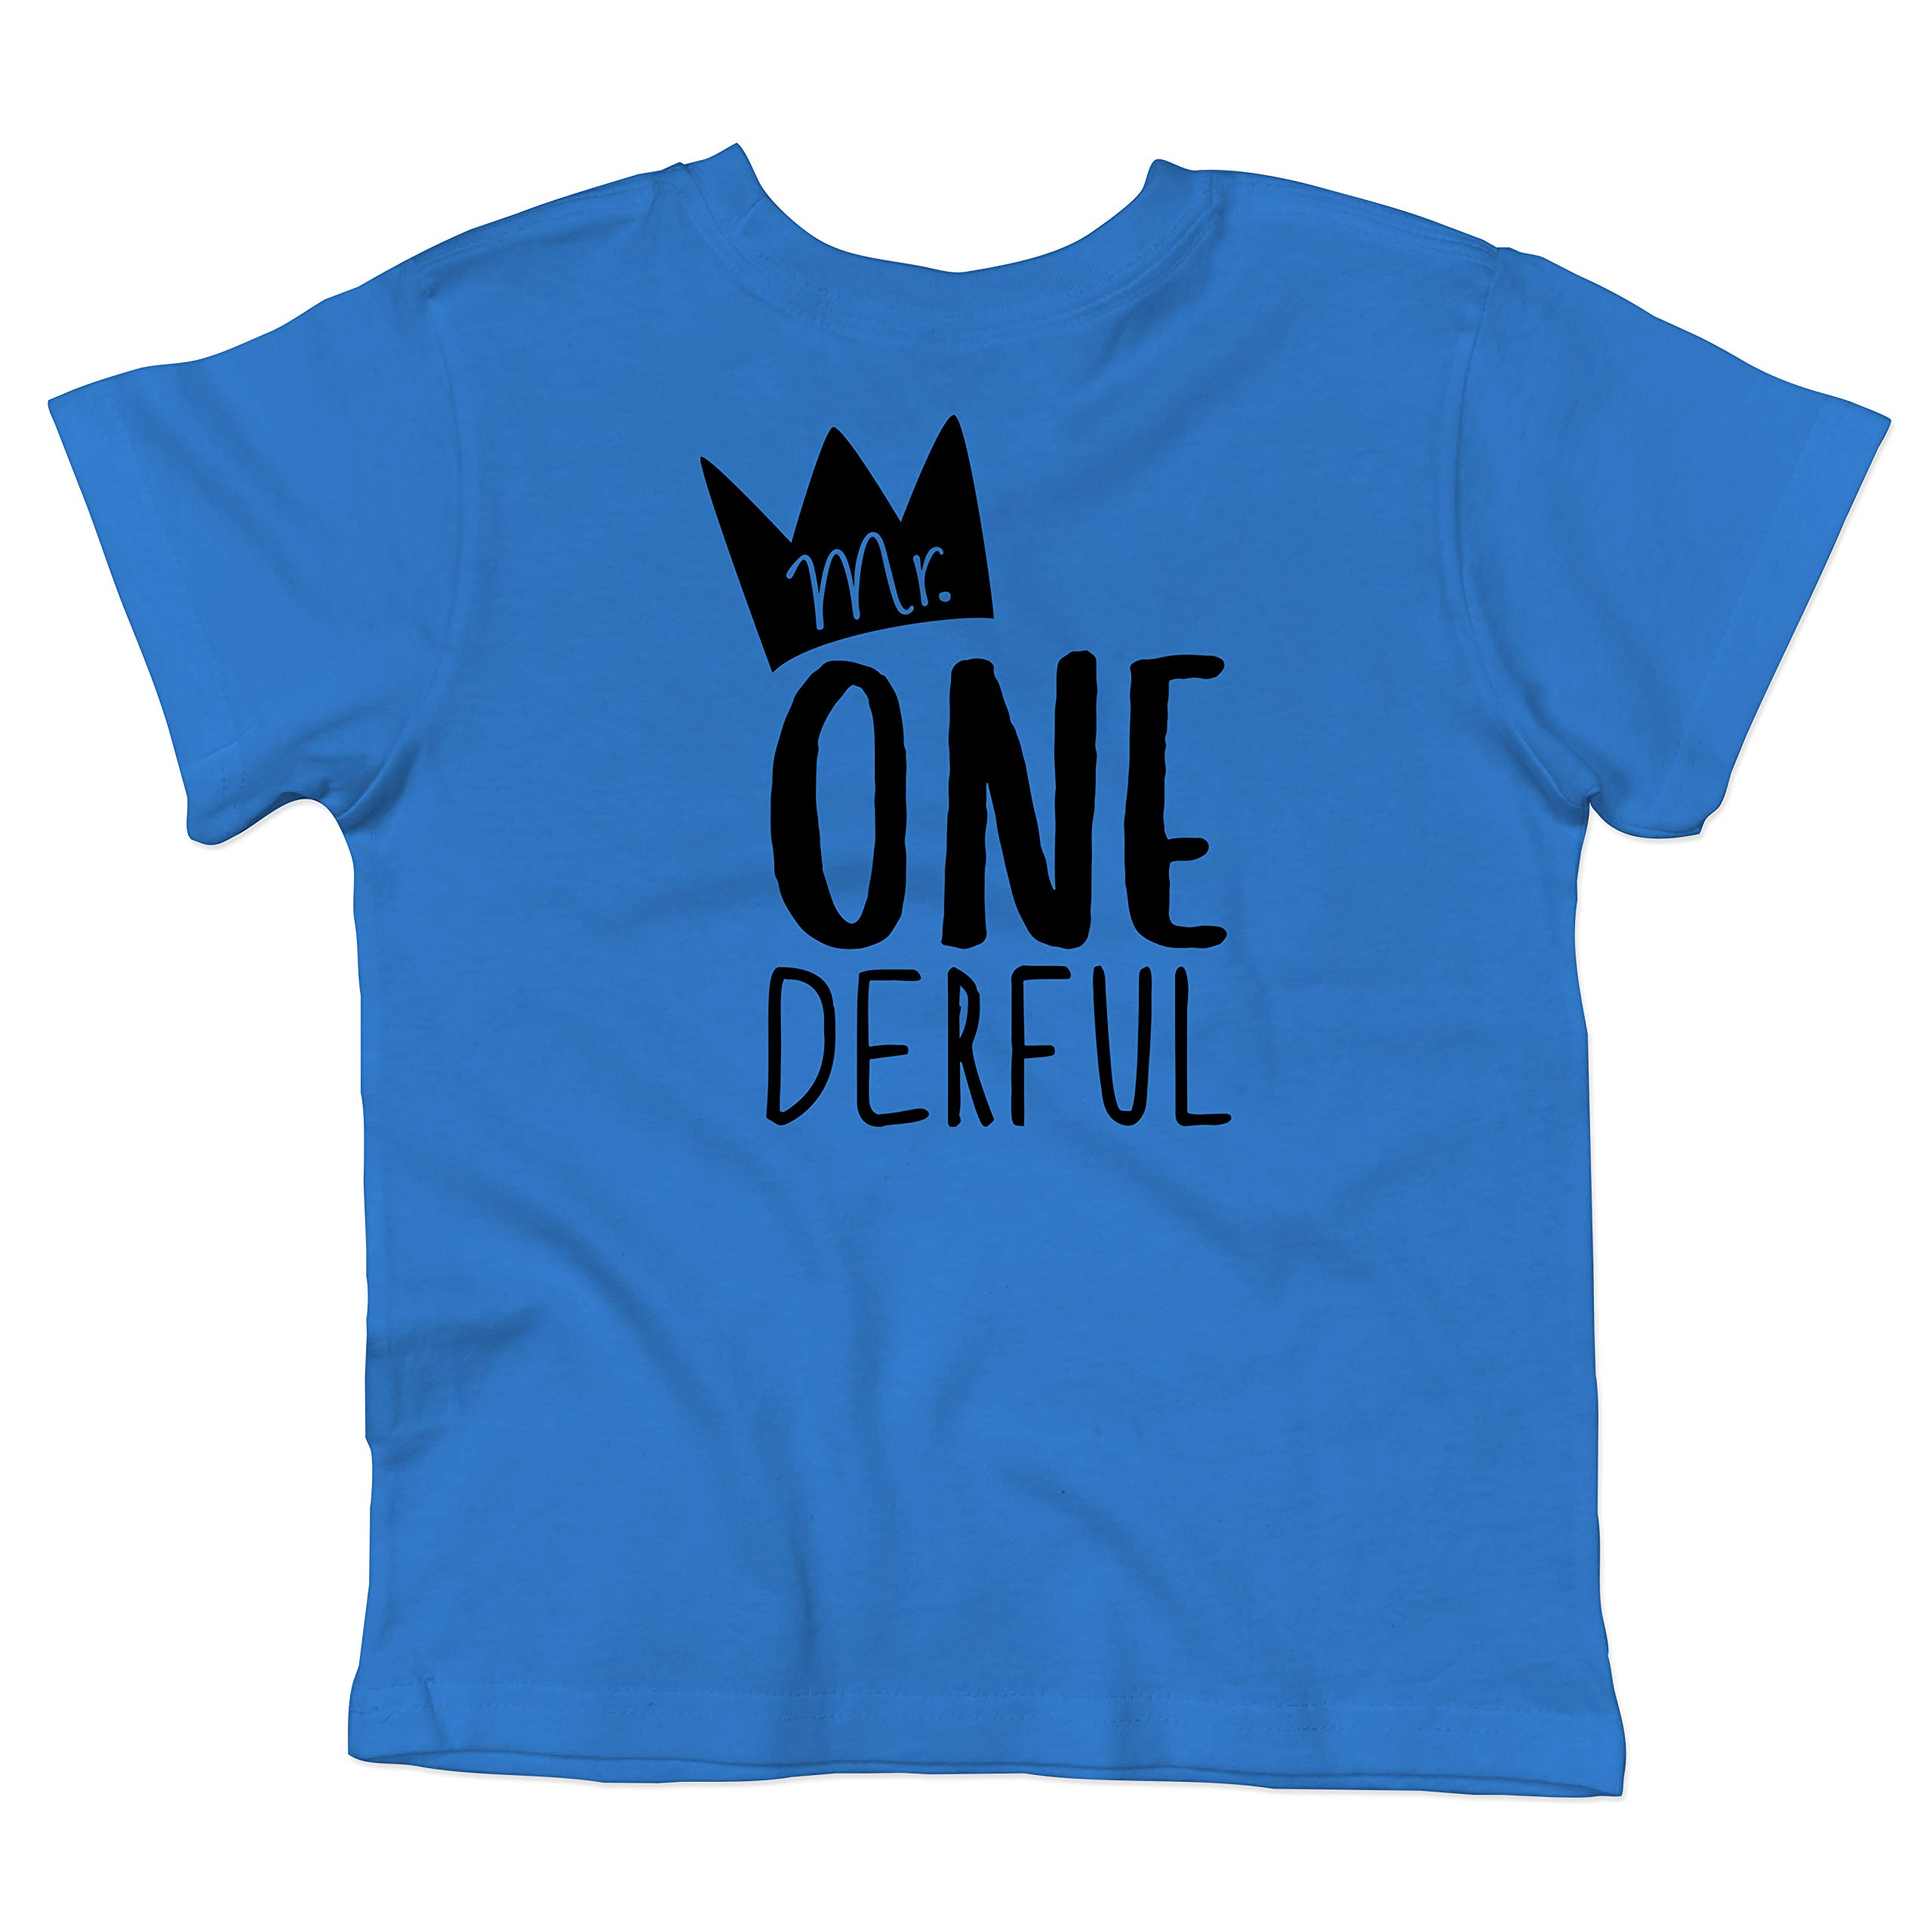 Olive Loves Apple Boys 1st Birthday Outfit Mr One-Derful Tee Shirt for Boys 1st Birthday Shirt Short Sleeve Blue Top,18 Months by Olive Loves Apple